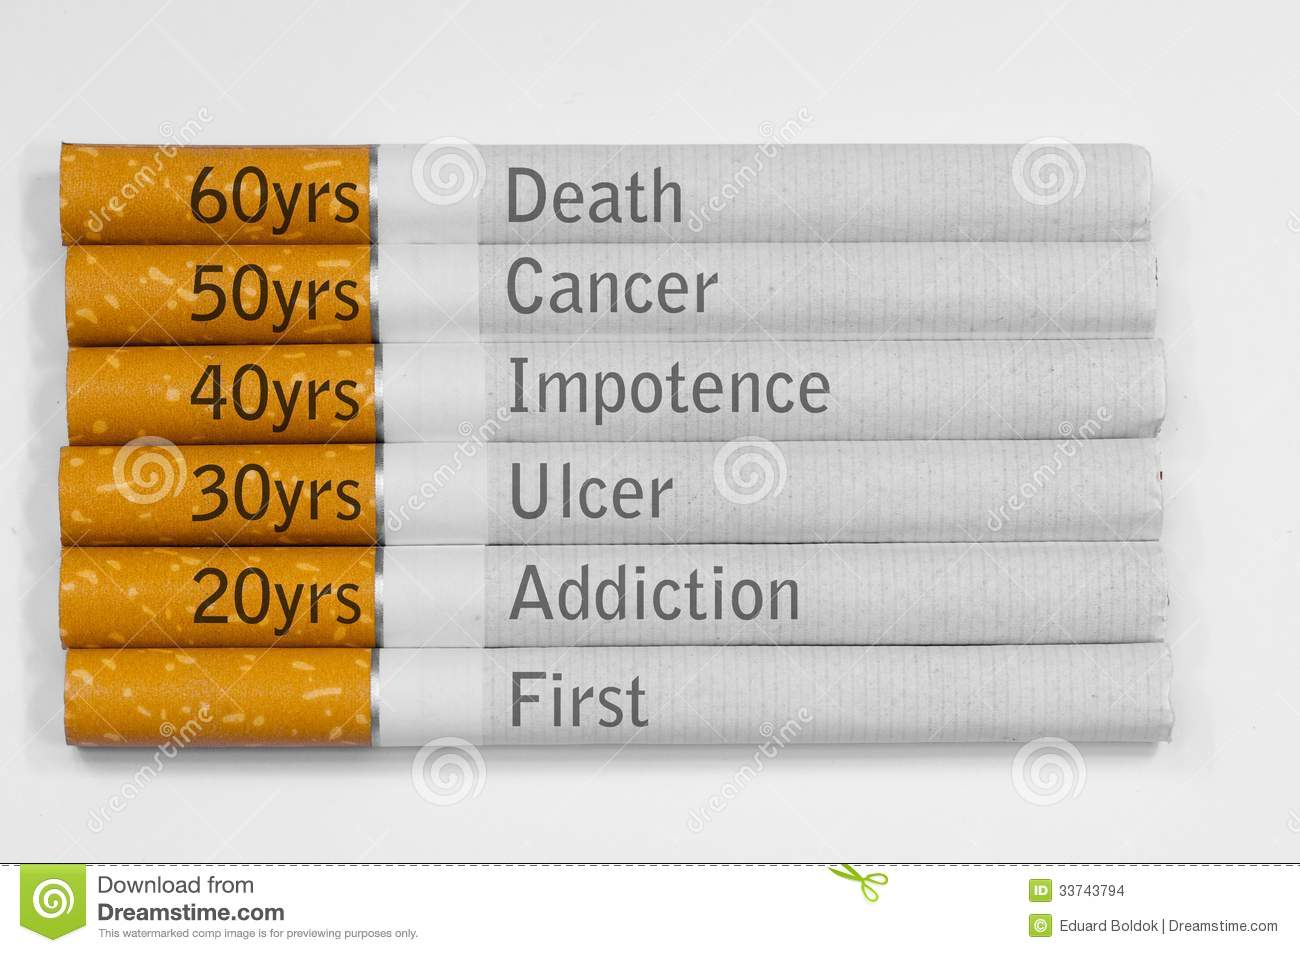 Cigarettes are killing us essay